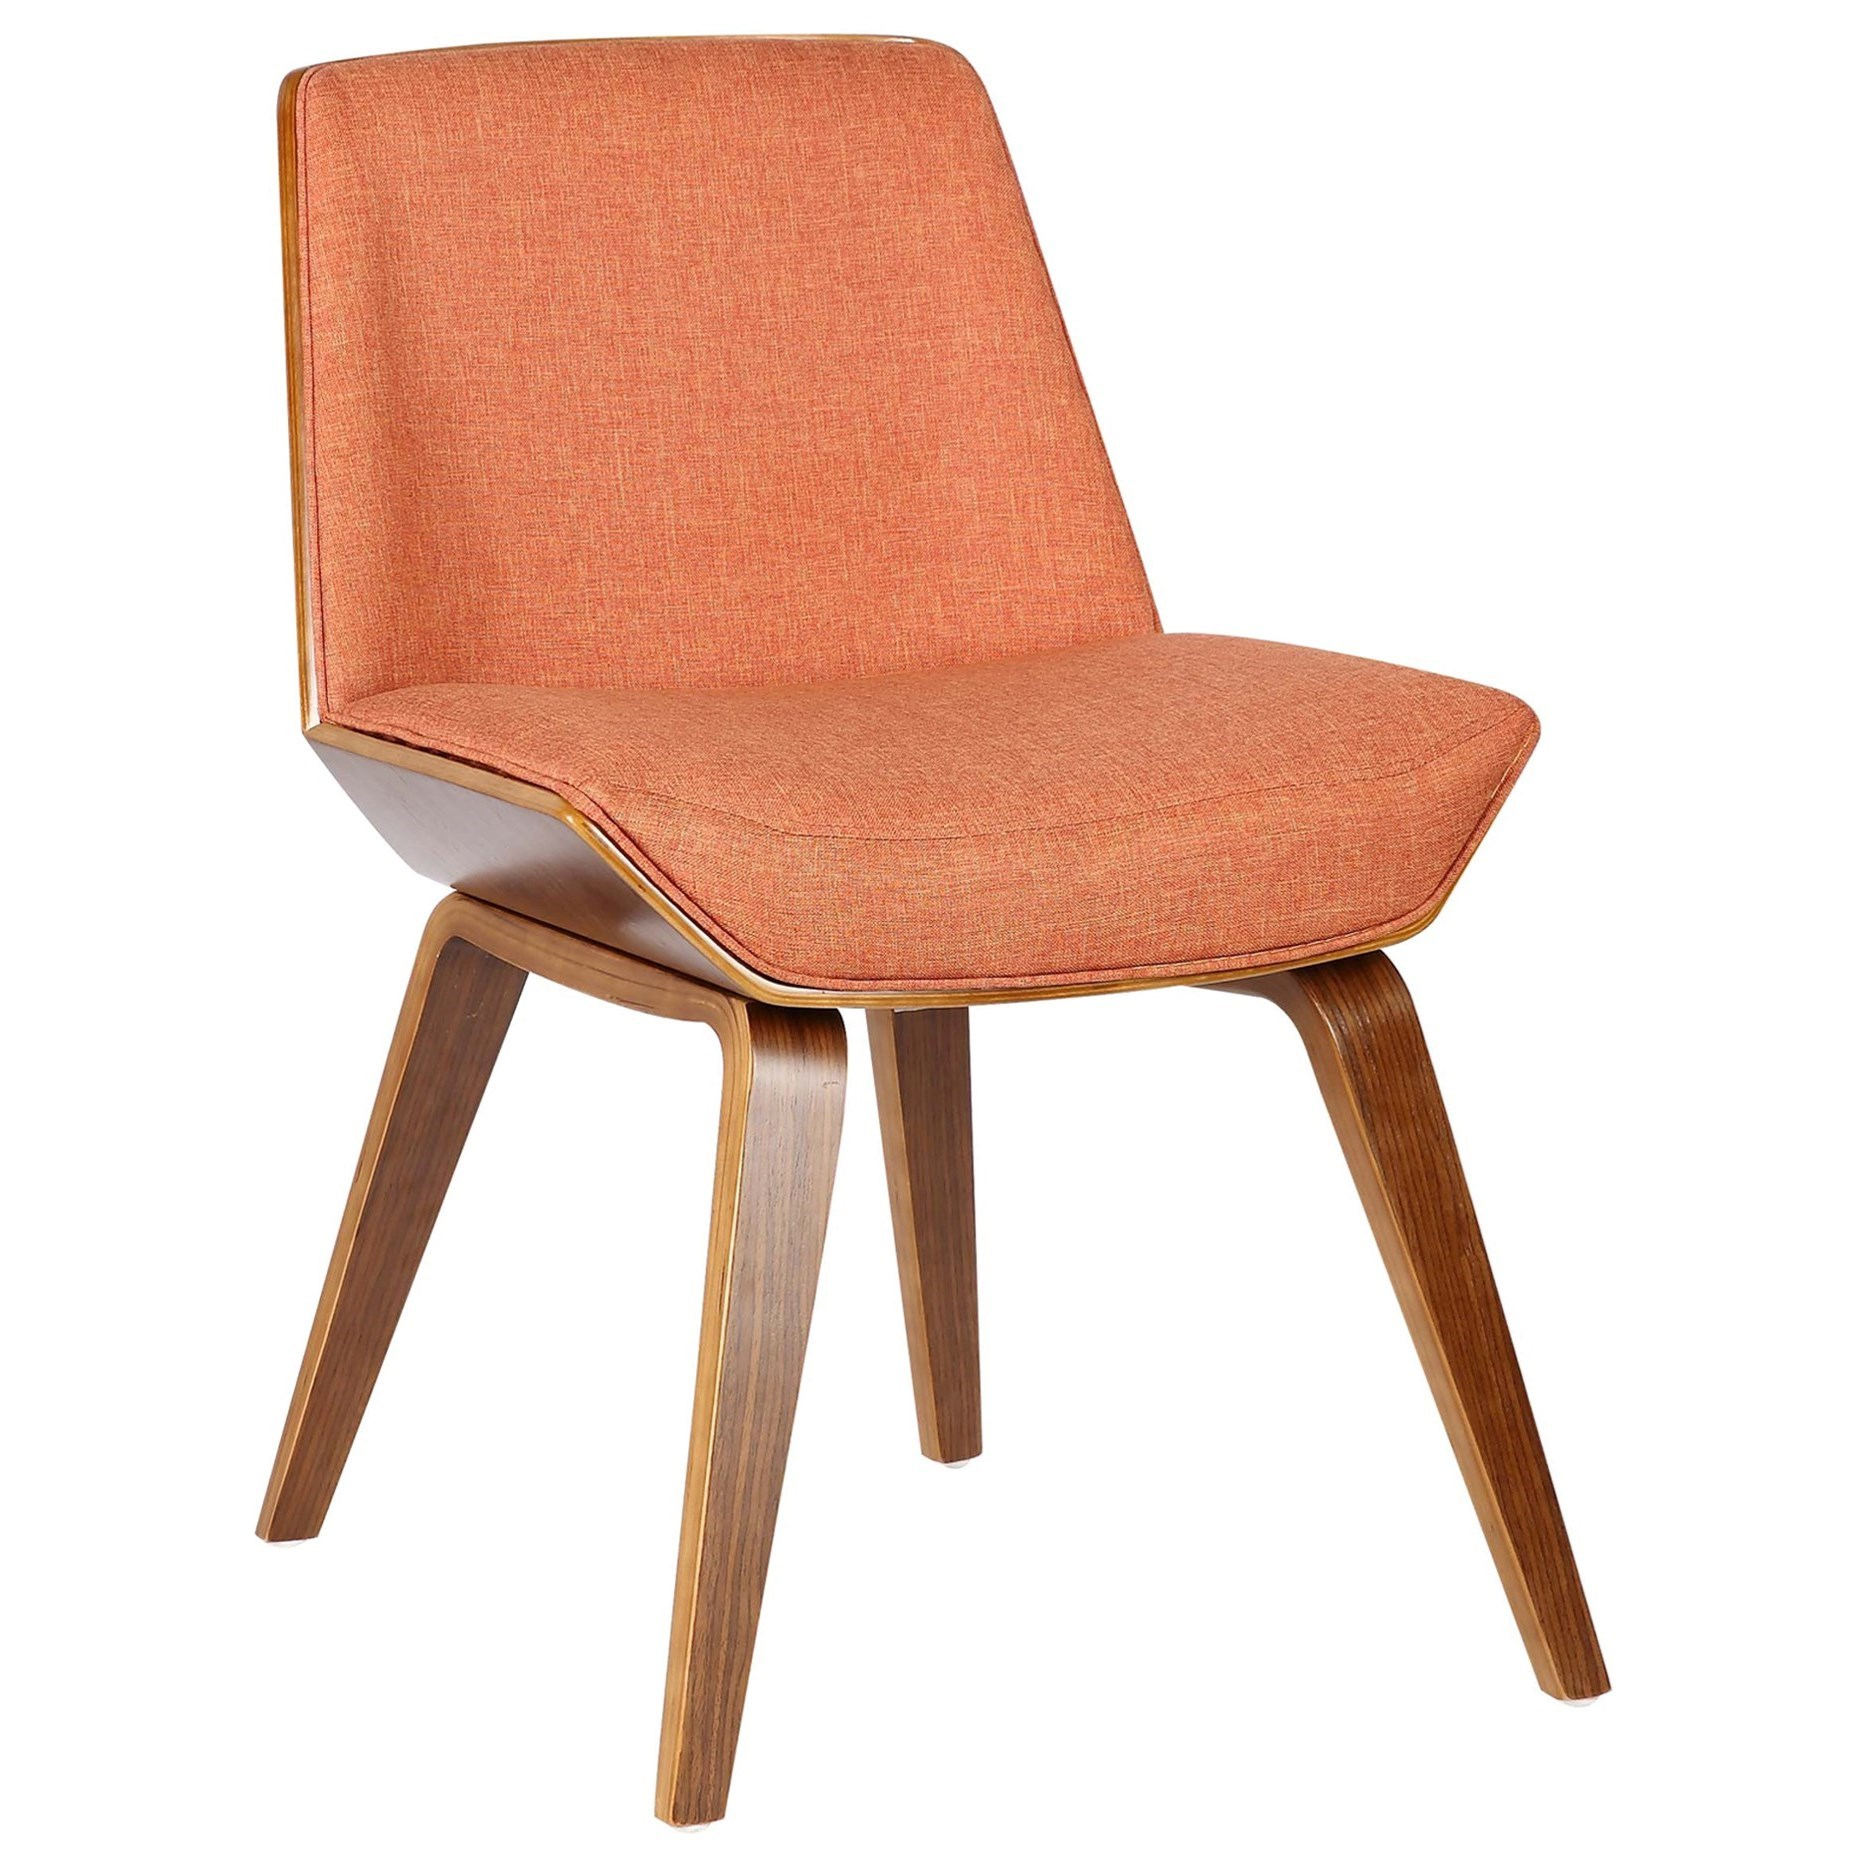 Mid-Century Dining Chair in Walnut Wood